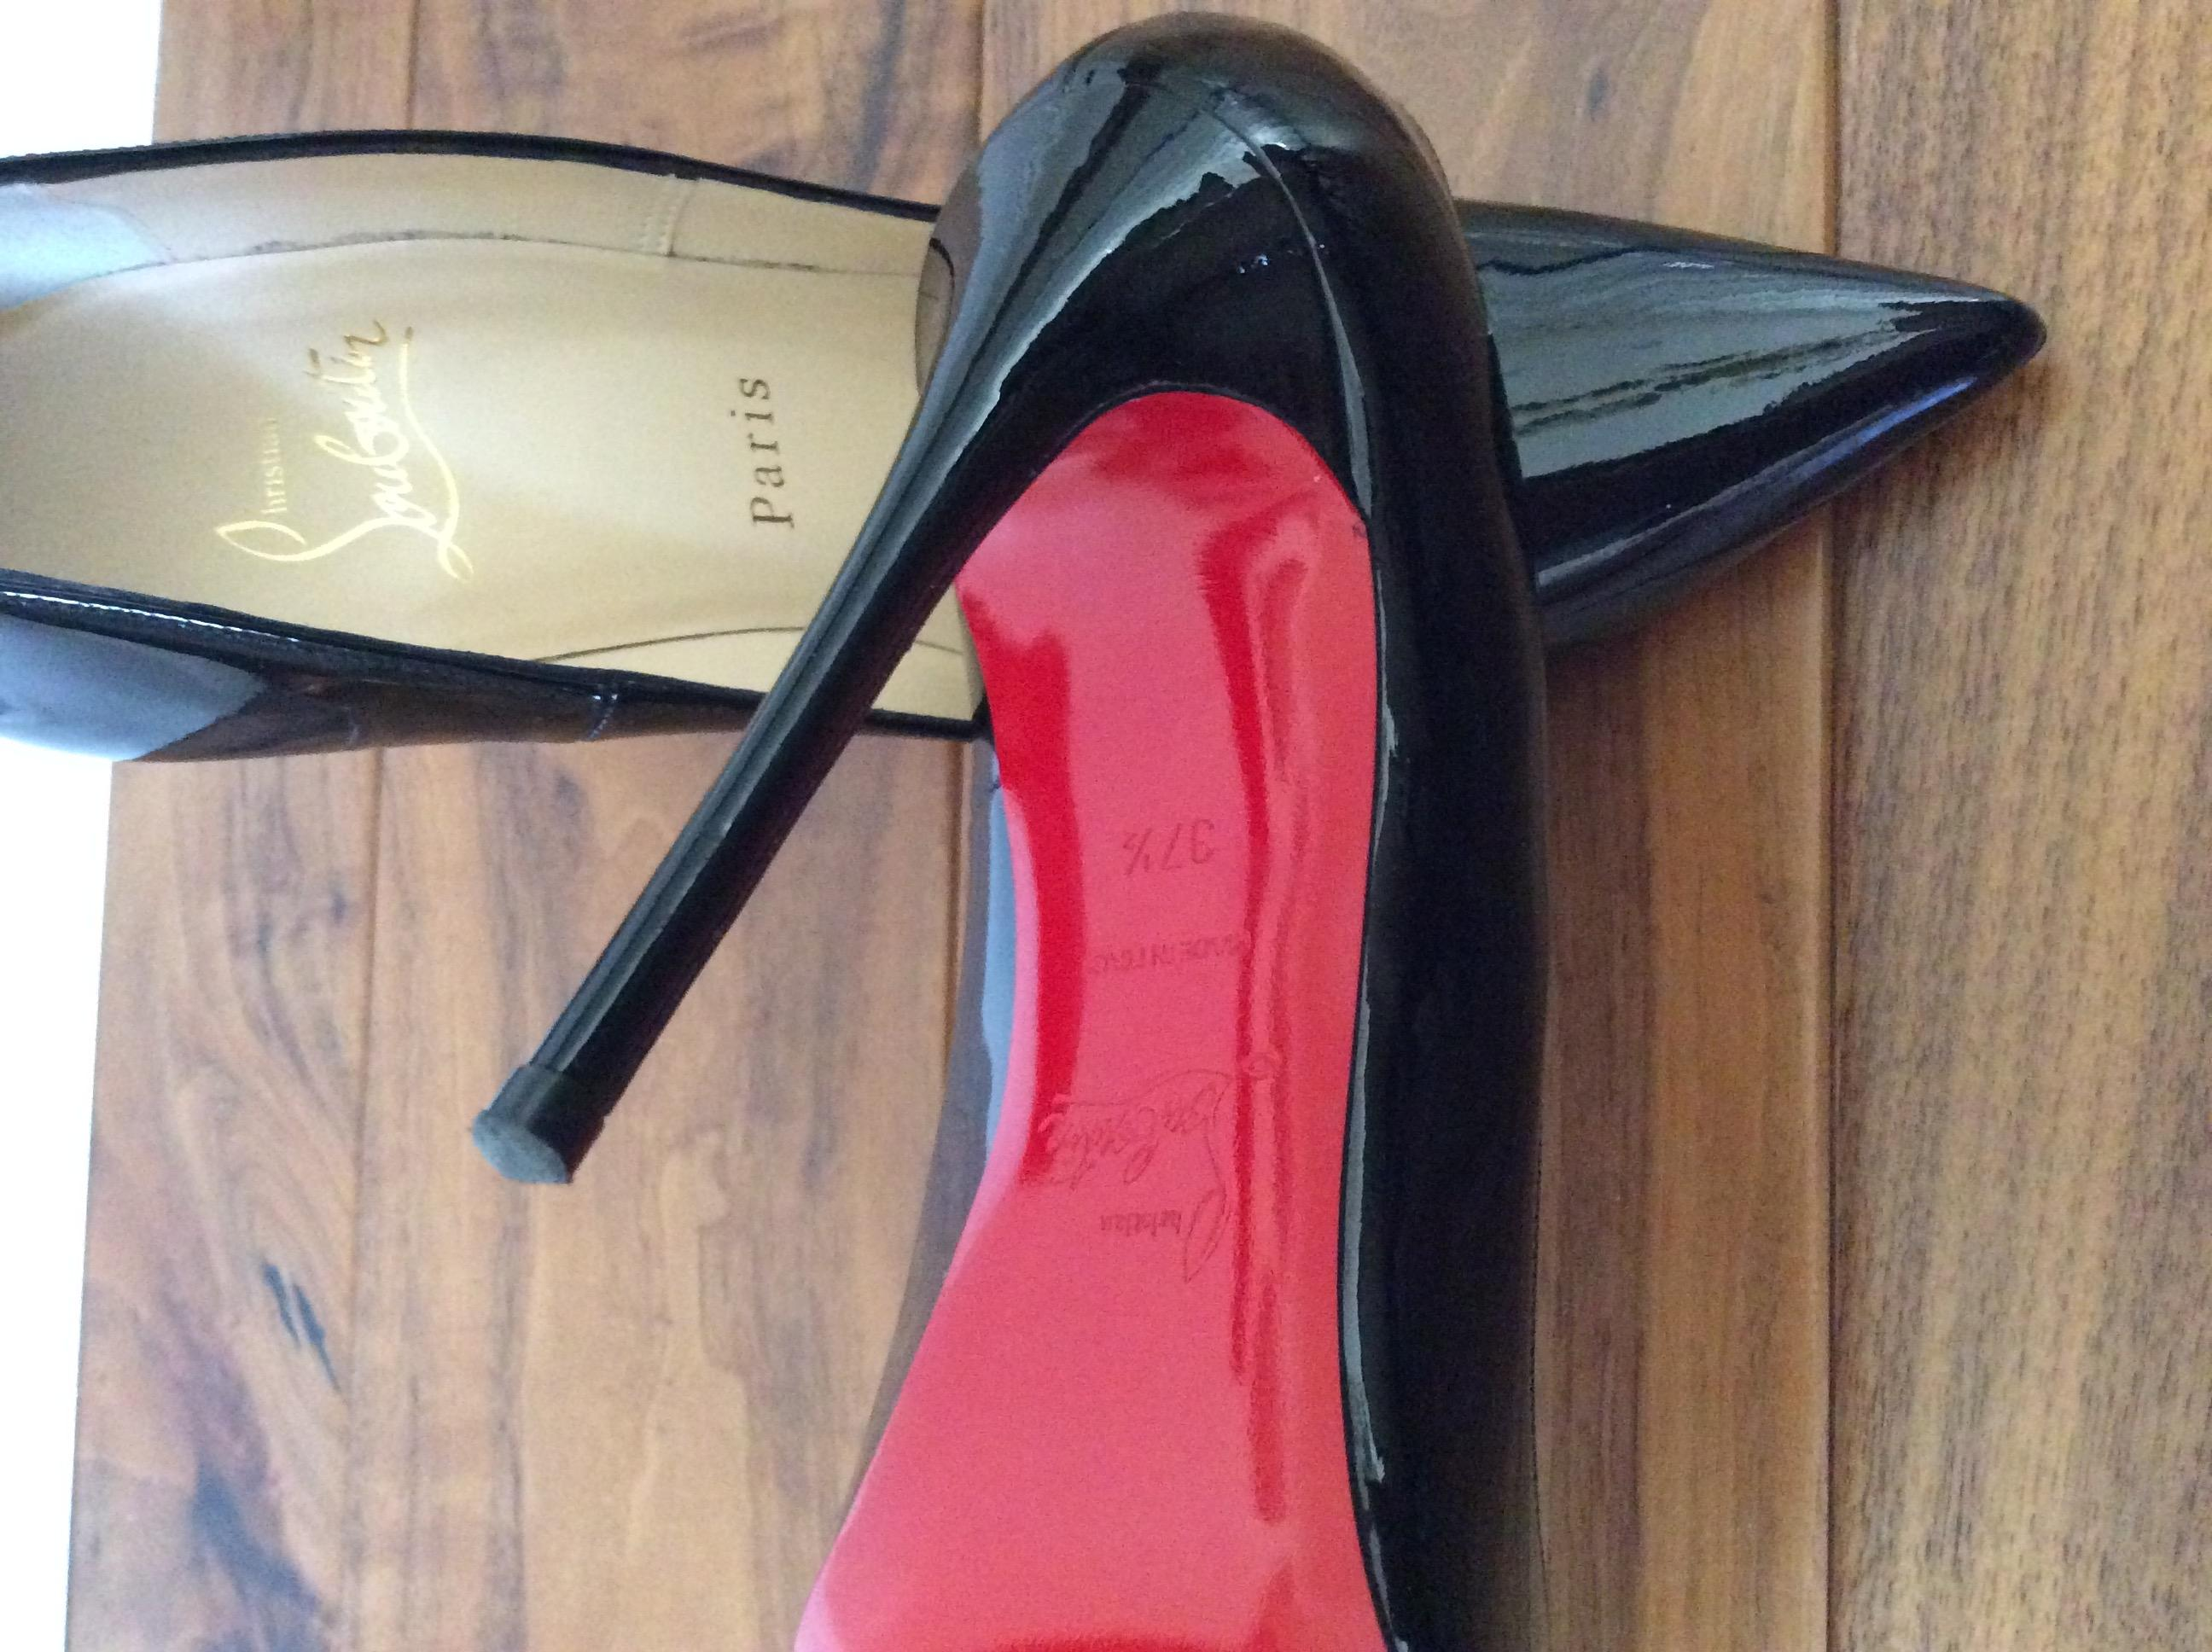 des bottes / chaussures chaussures / jimmy choo automnal 2d6417